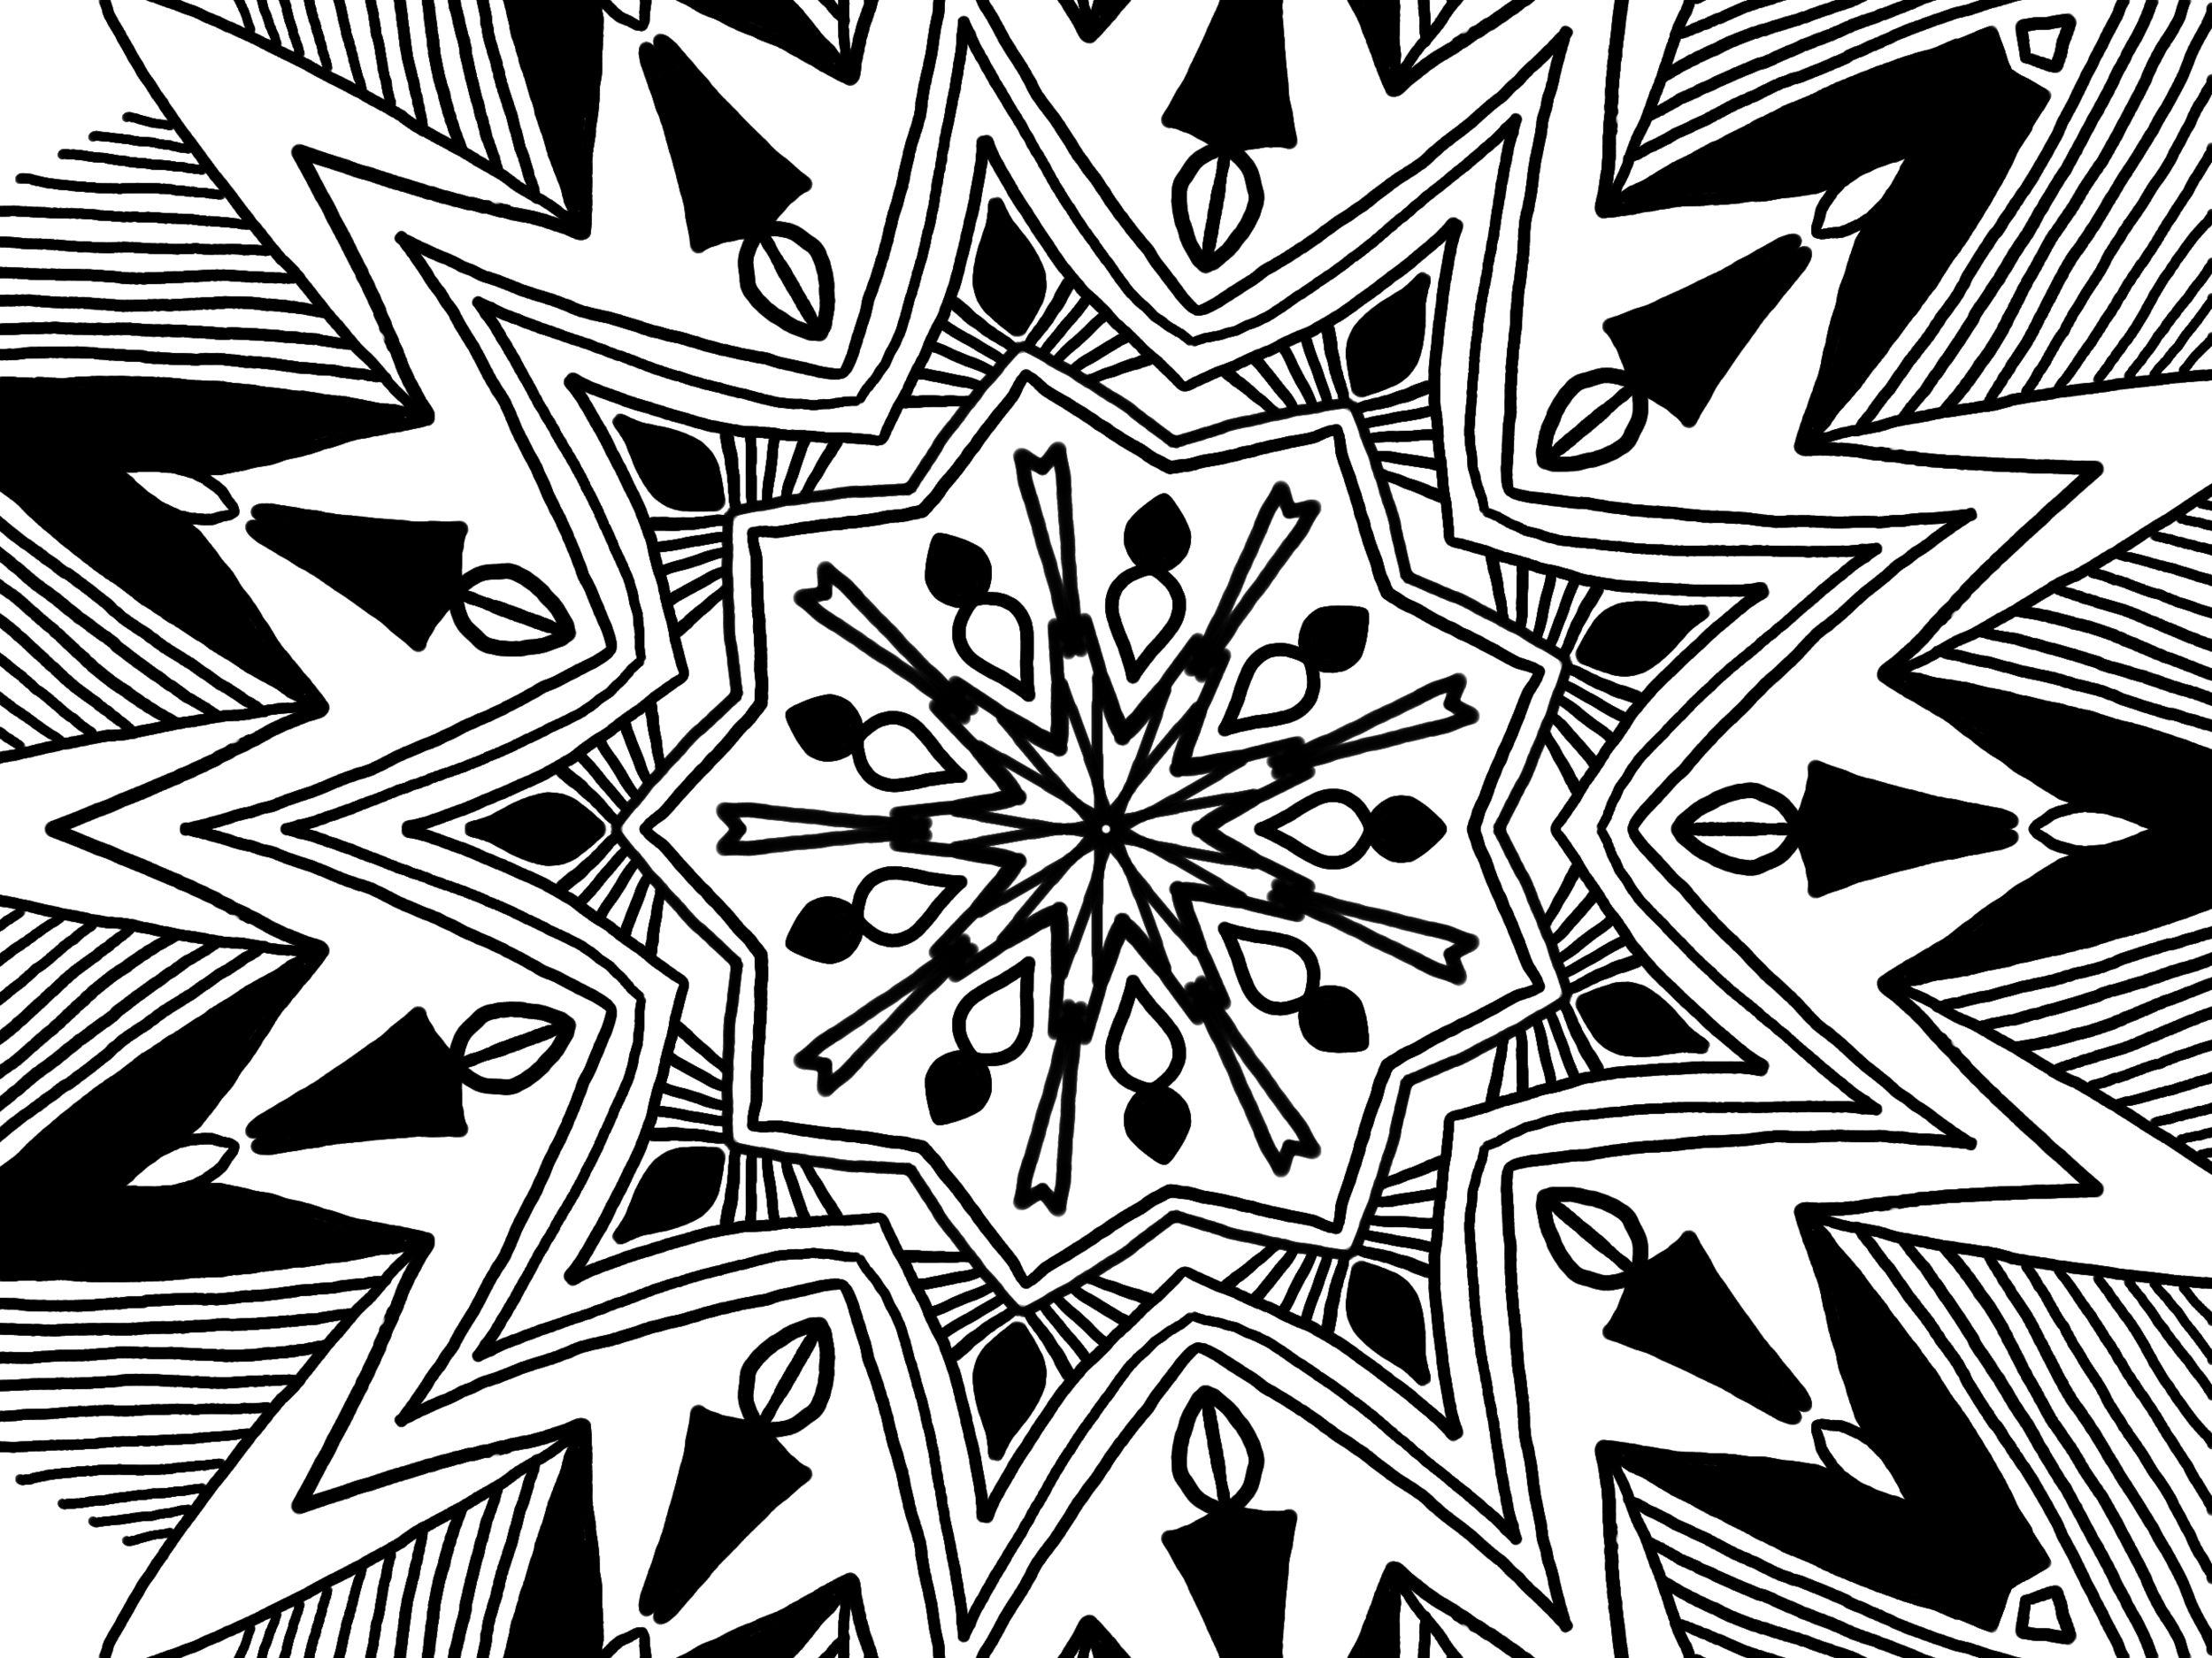 PNG image-DF811BF1383A-2.png